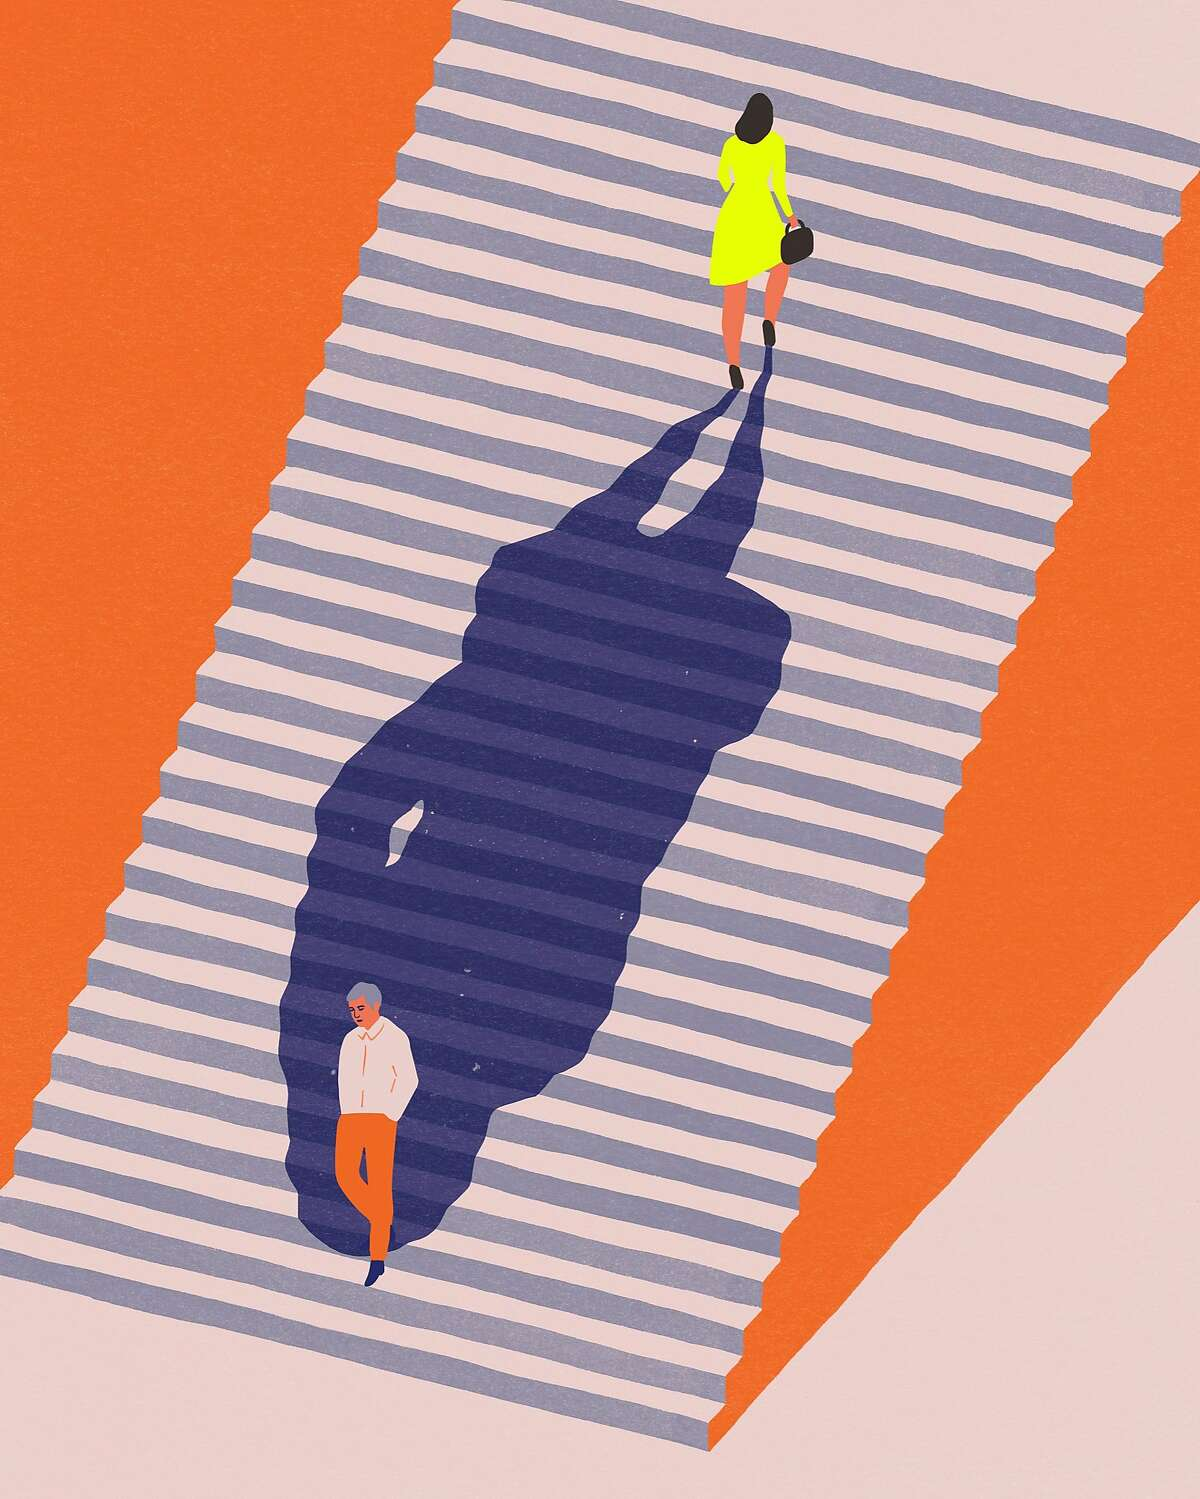 Gender dynamics have become much more egalitarian over the past half-century, but certain attitudes may endure when it comes to men, women and money. (Monica Garwood/The New York Times) -- NO SALES; FOR EDITORIAL USE ONLY WITH NYT STORY XXstory-slugXX BY TARA SIEGEL BERNARD FOR JULY 07, 2018. ALL OTHER USE PROHIBITED. --